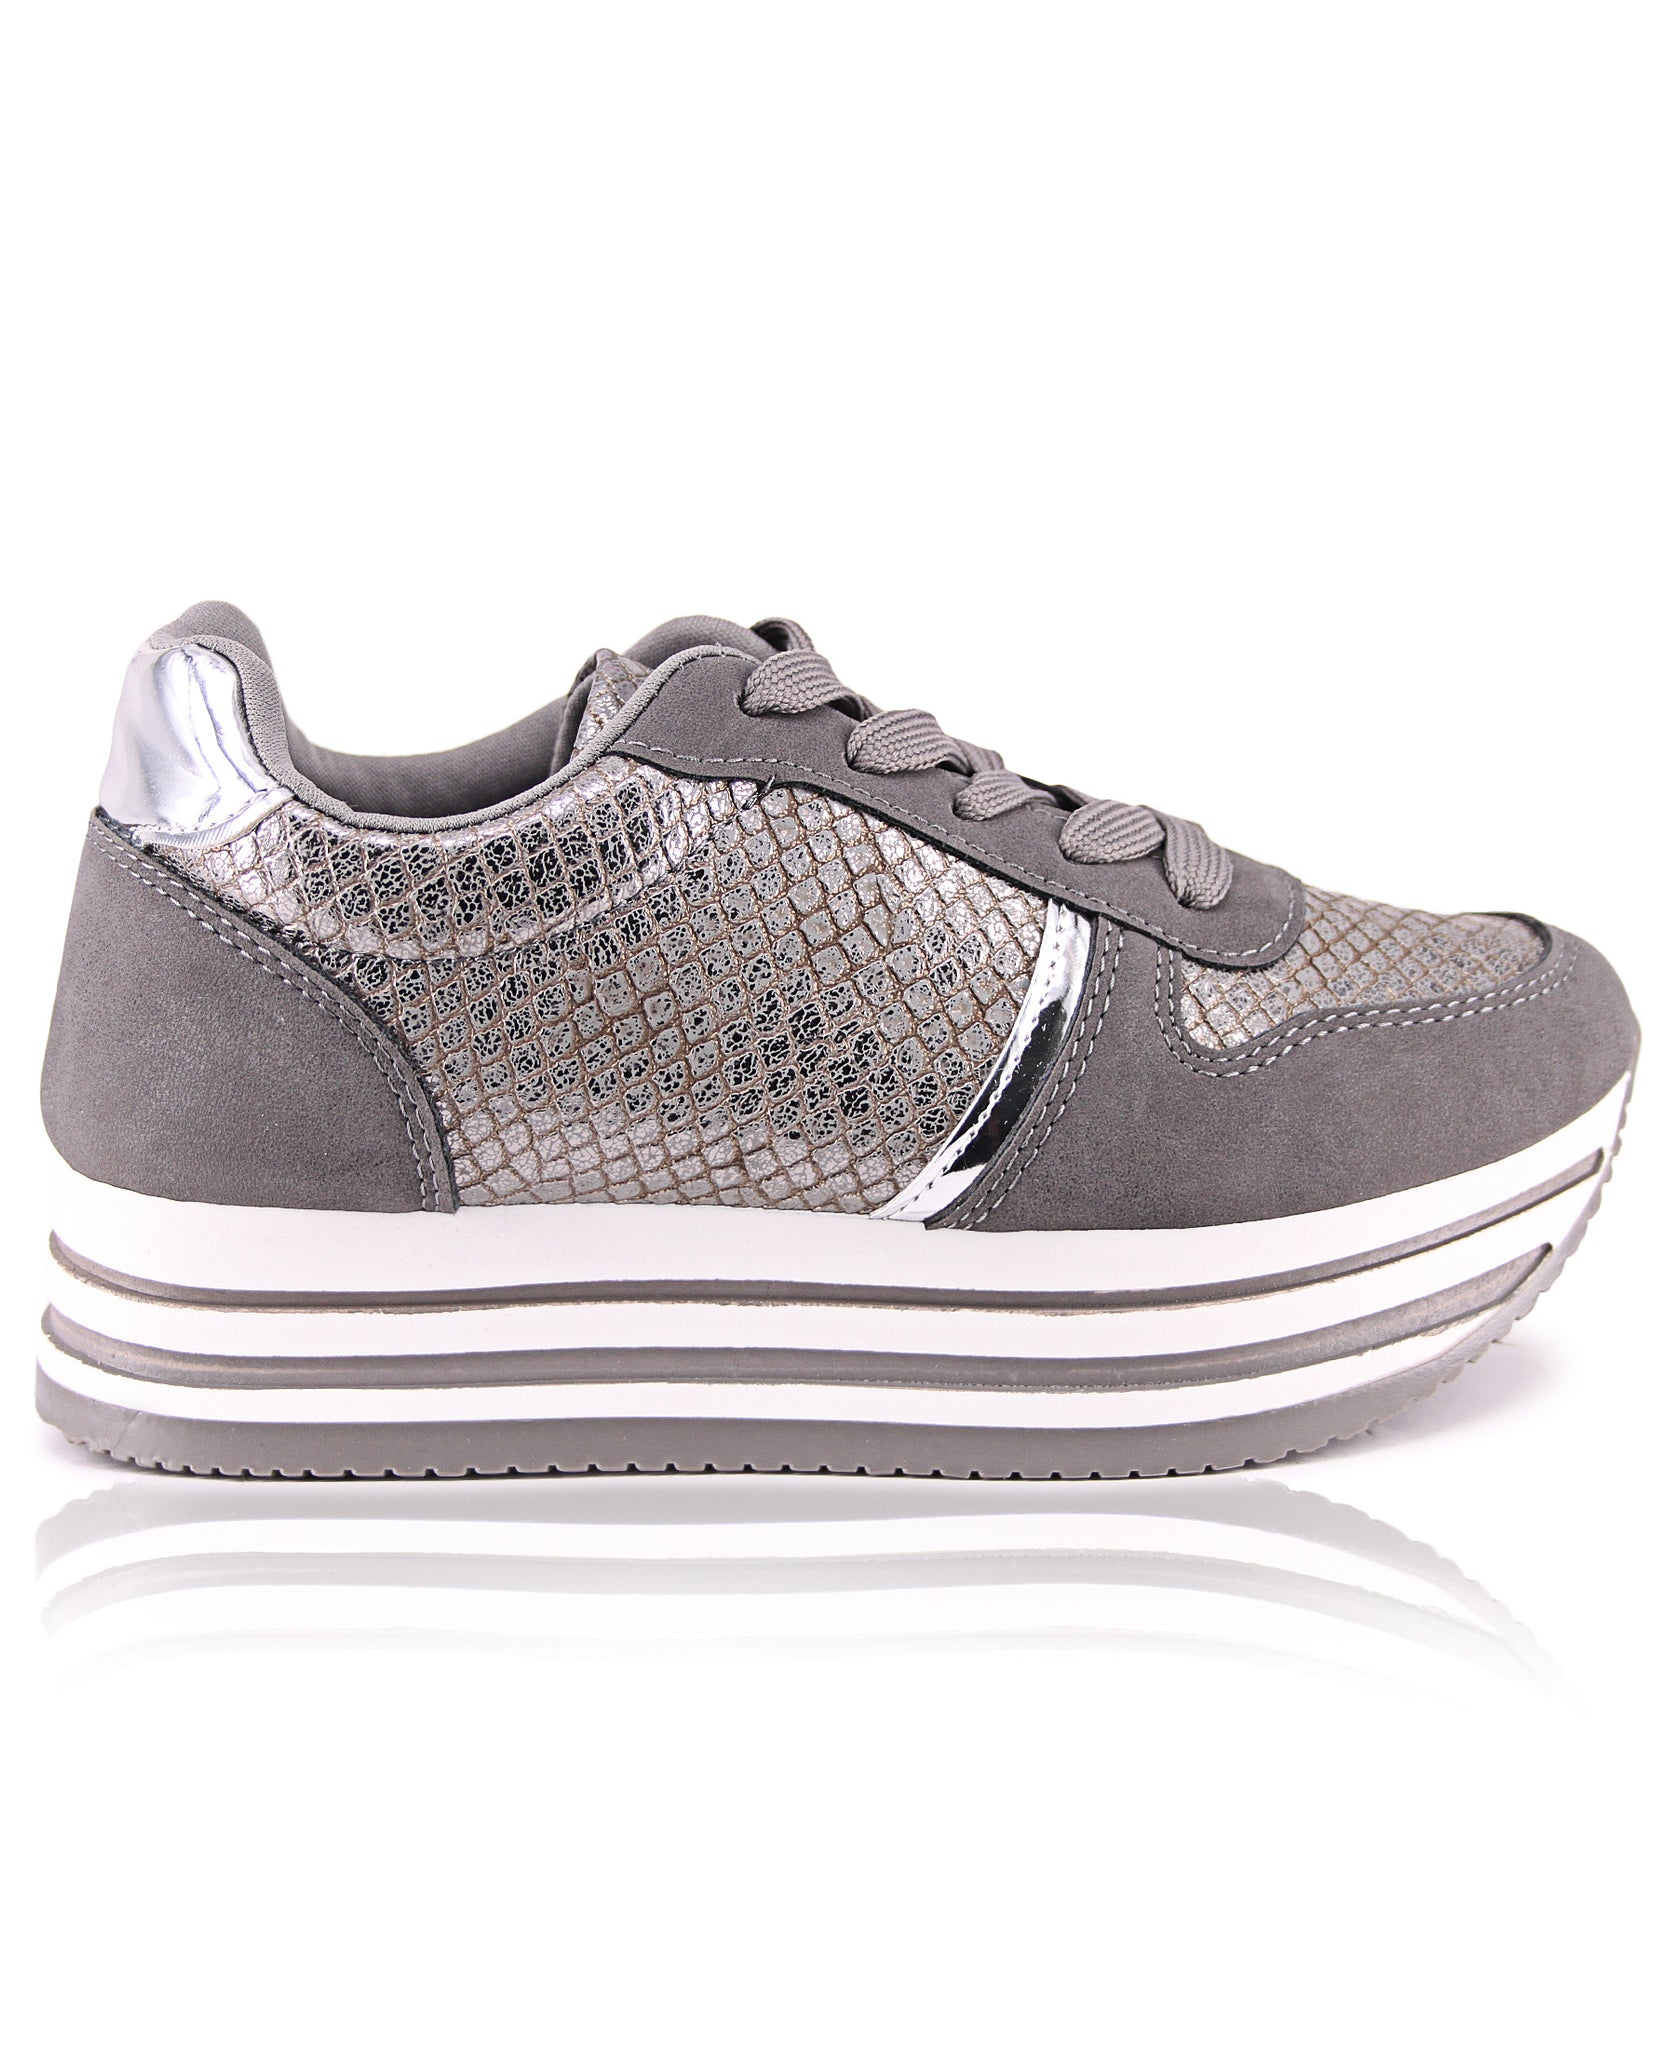 Ladies' Rock Snake Metallic - Grey